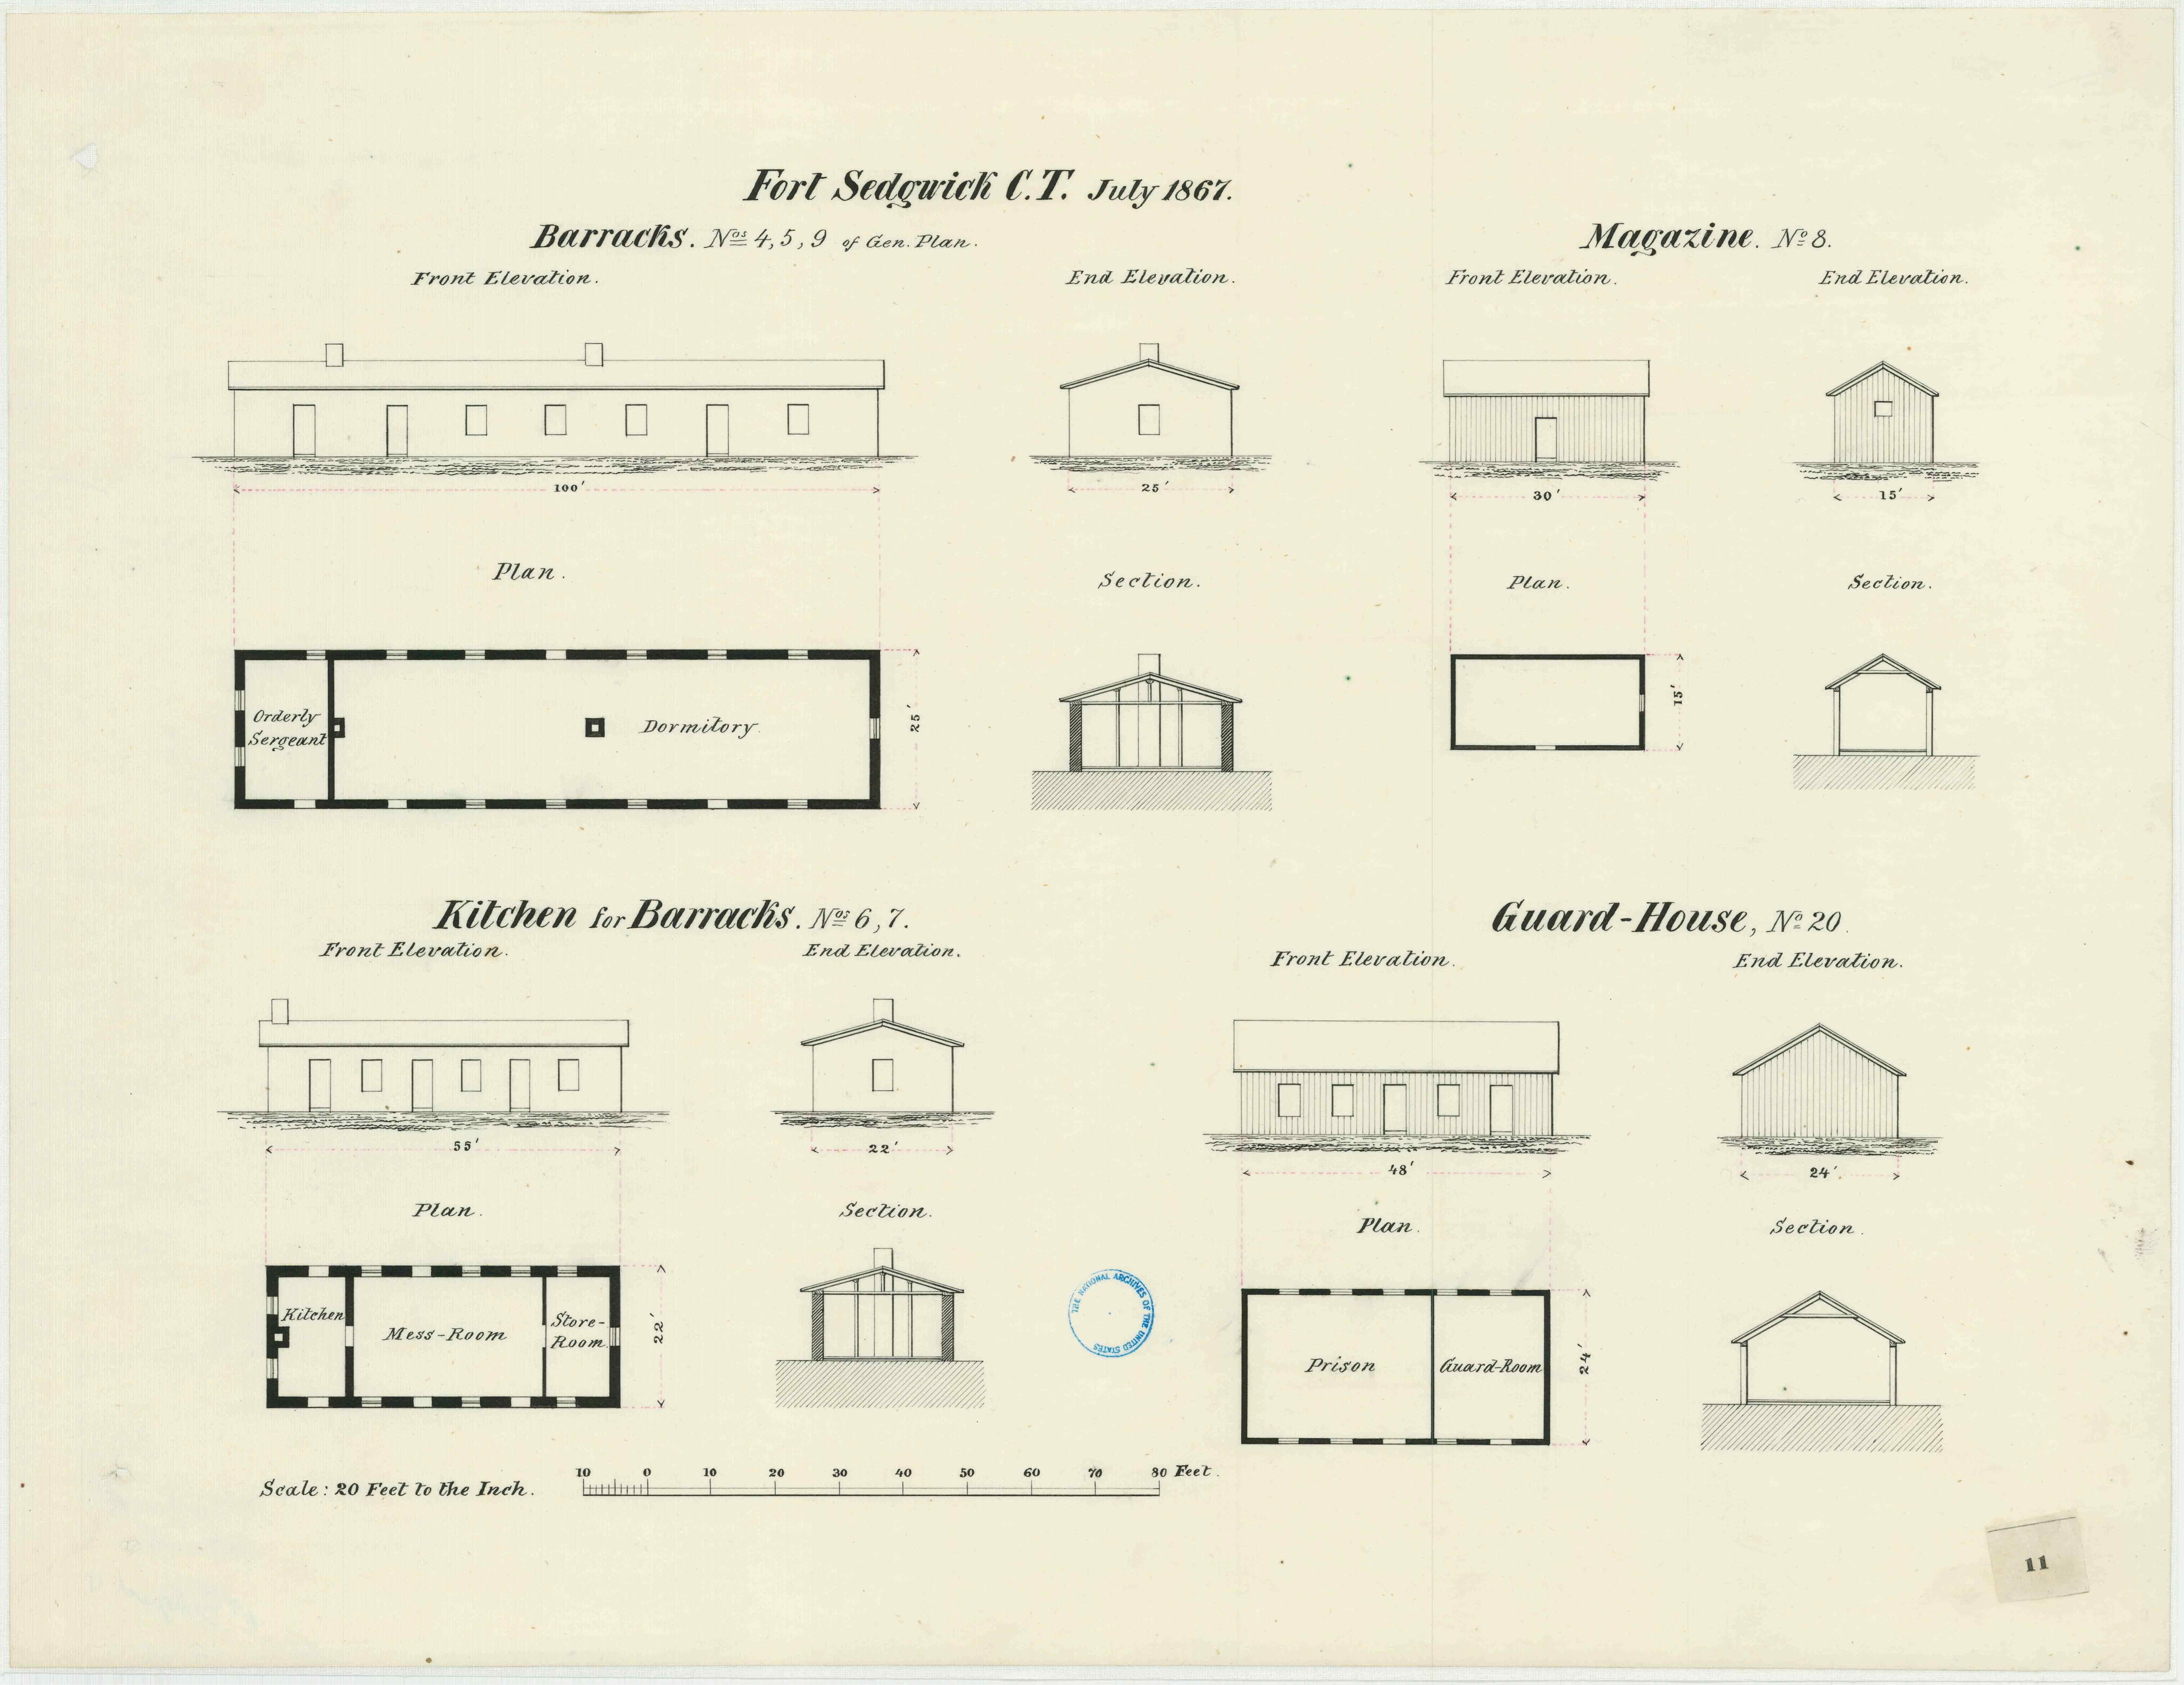 July 1867 military architectural plans for the barracks, kitchen, magazine and guard house at Fort Sedgwick (Courtesy of the Map Division, Archives II, NARA)